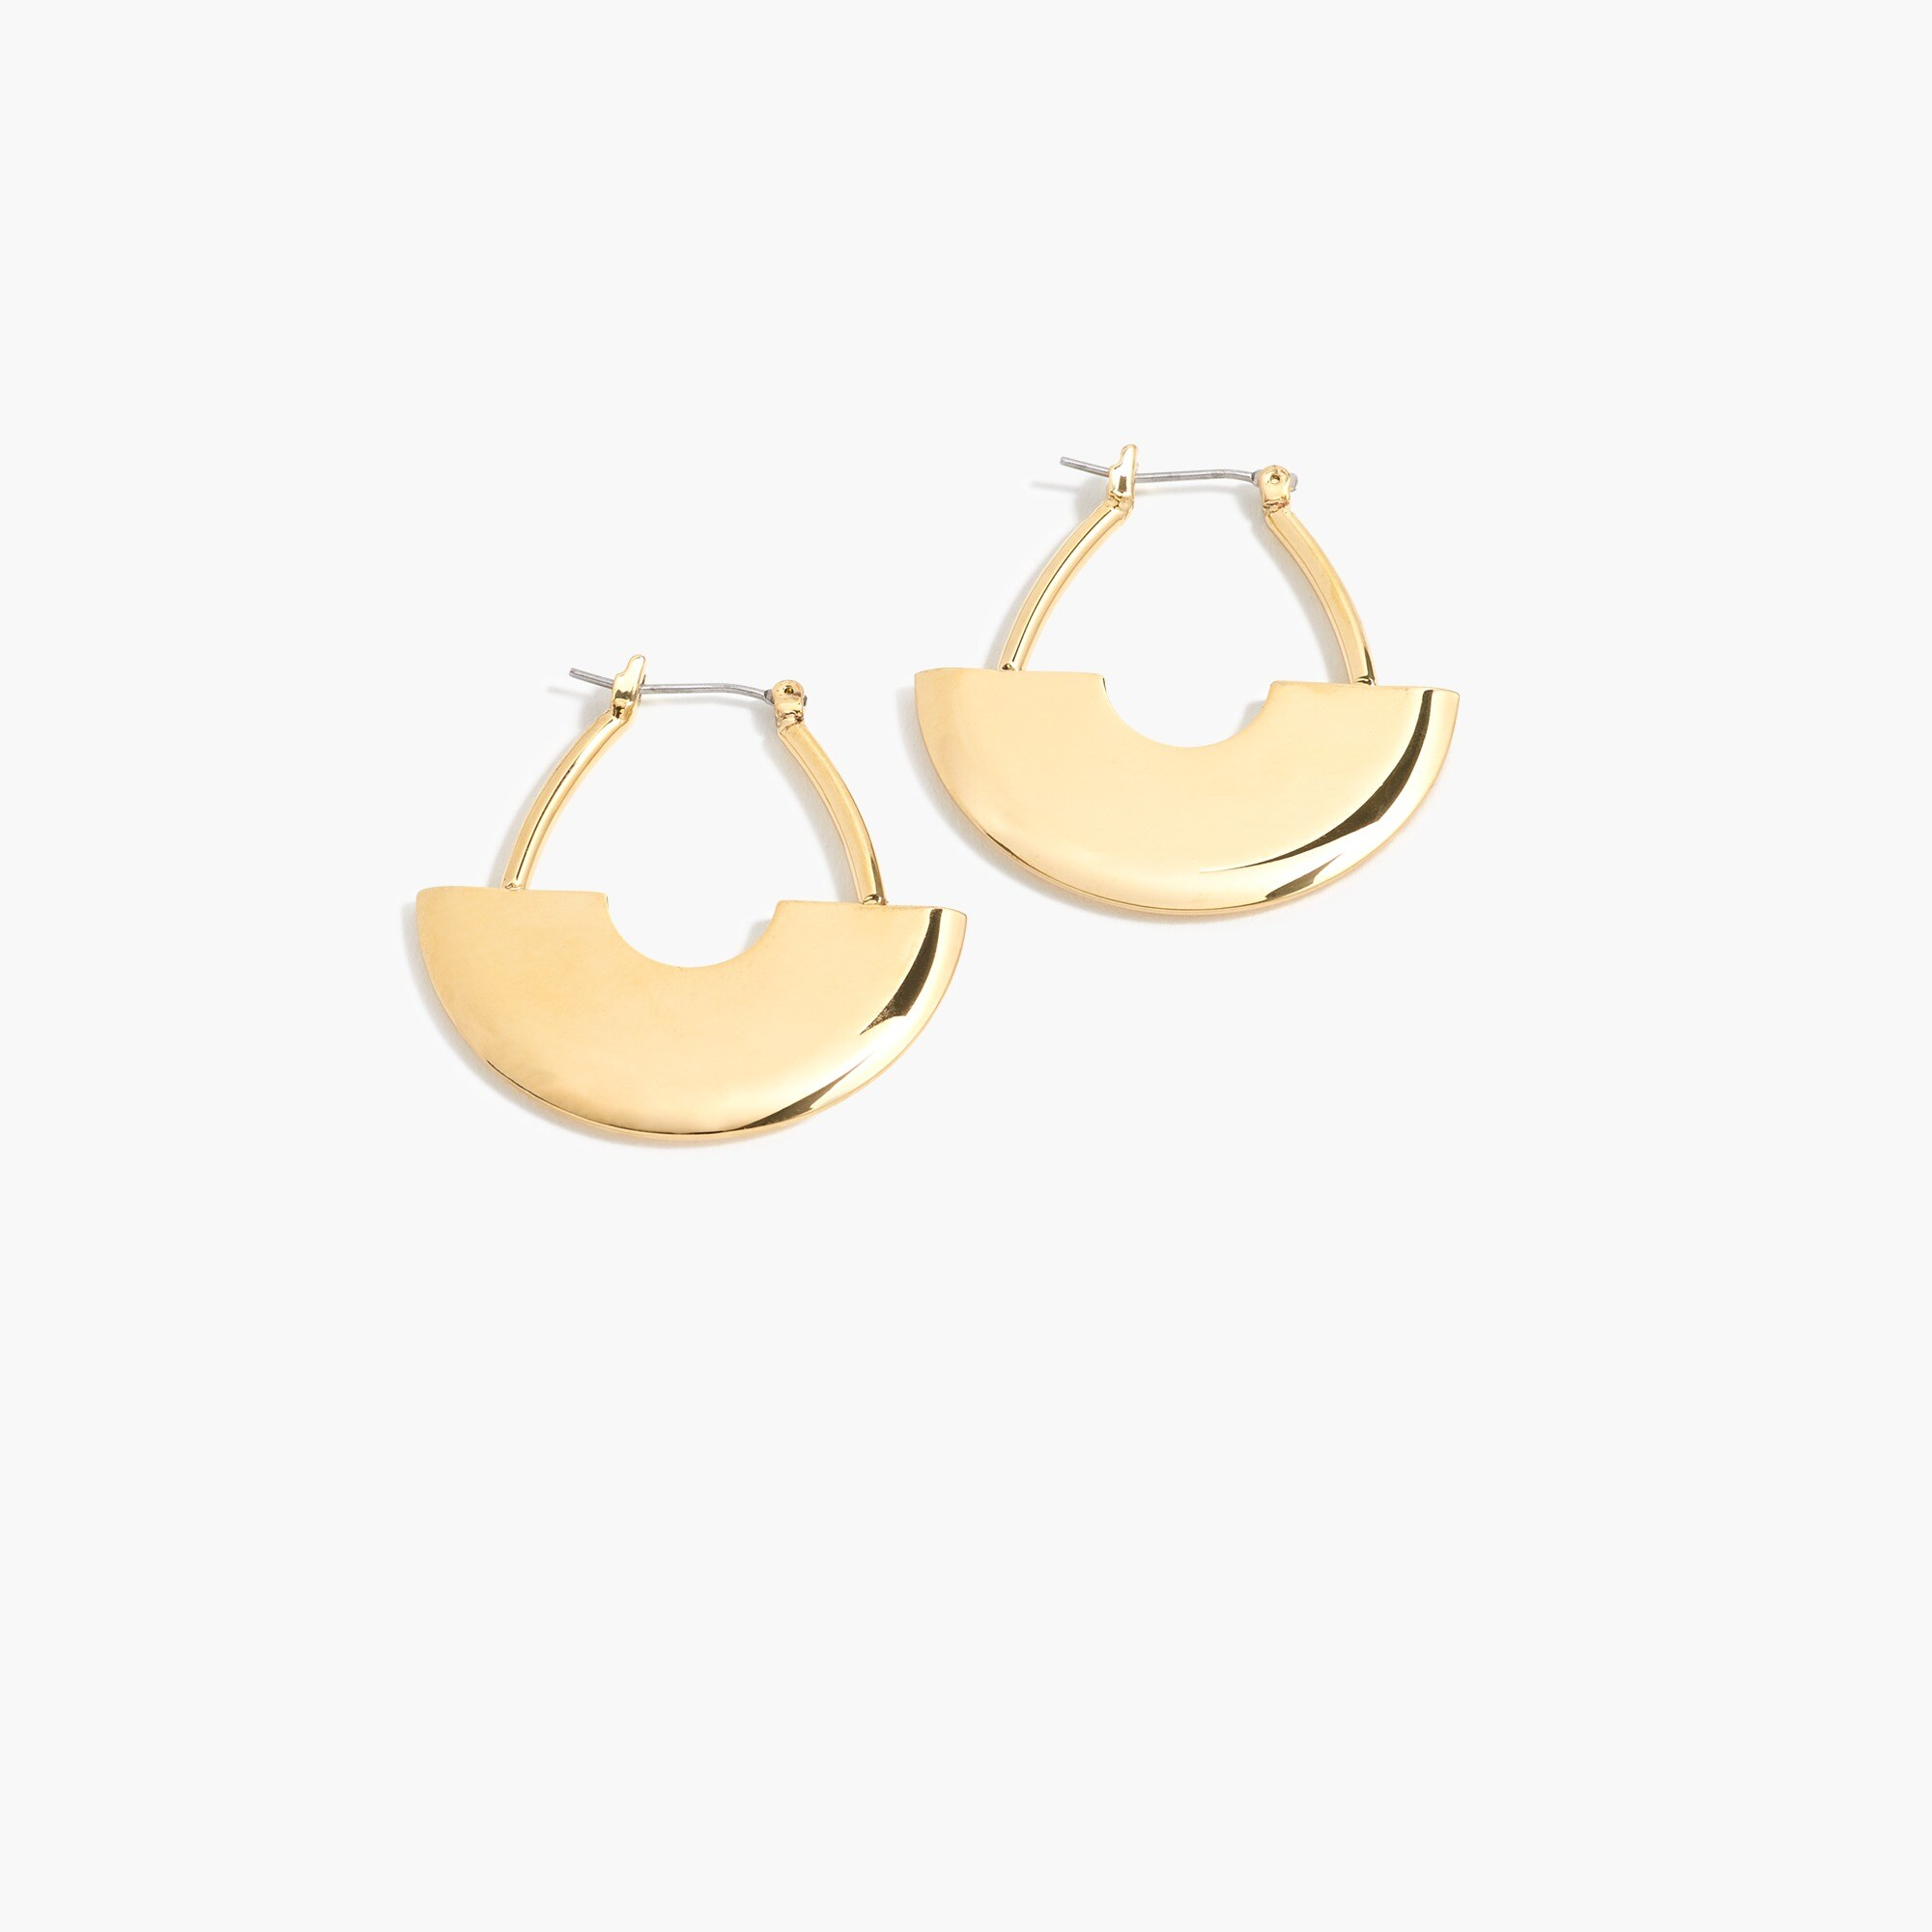 Image 2 for Gold art deco hoop earrings